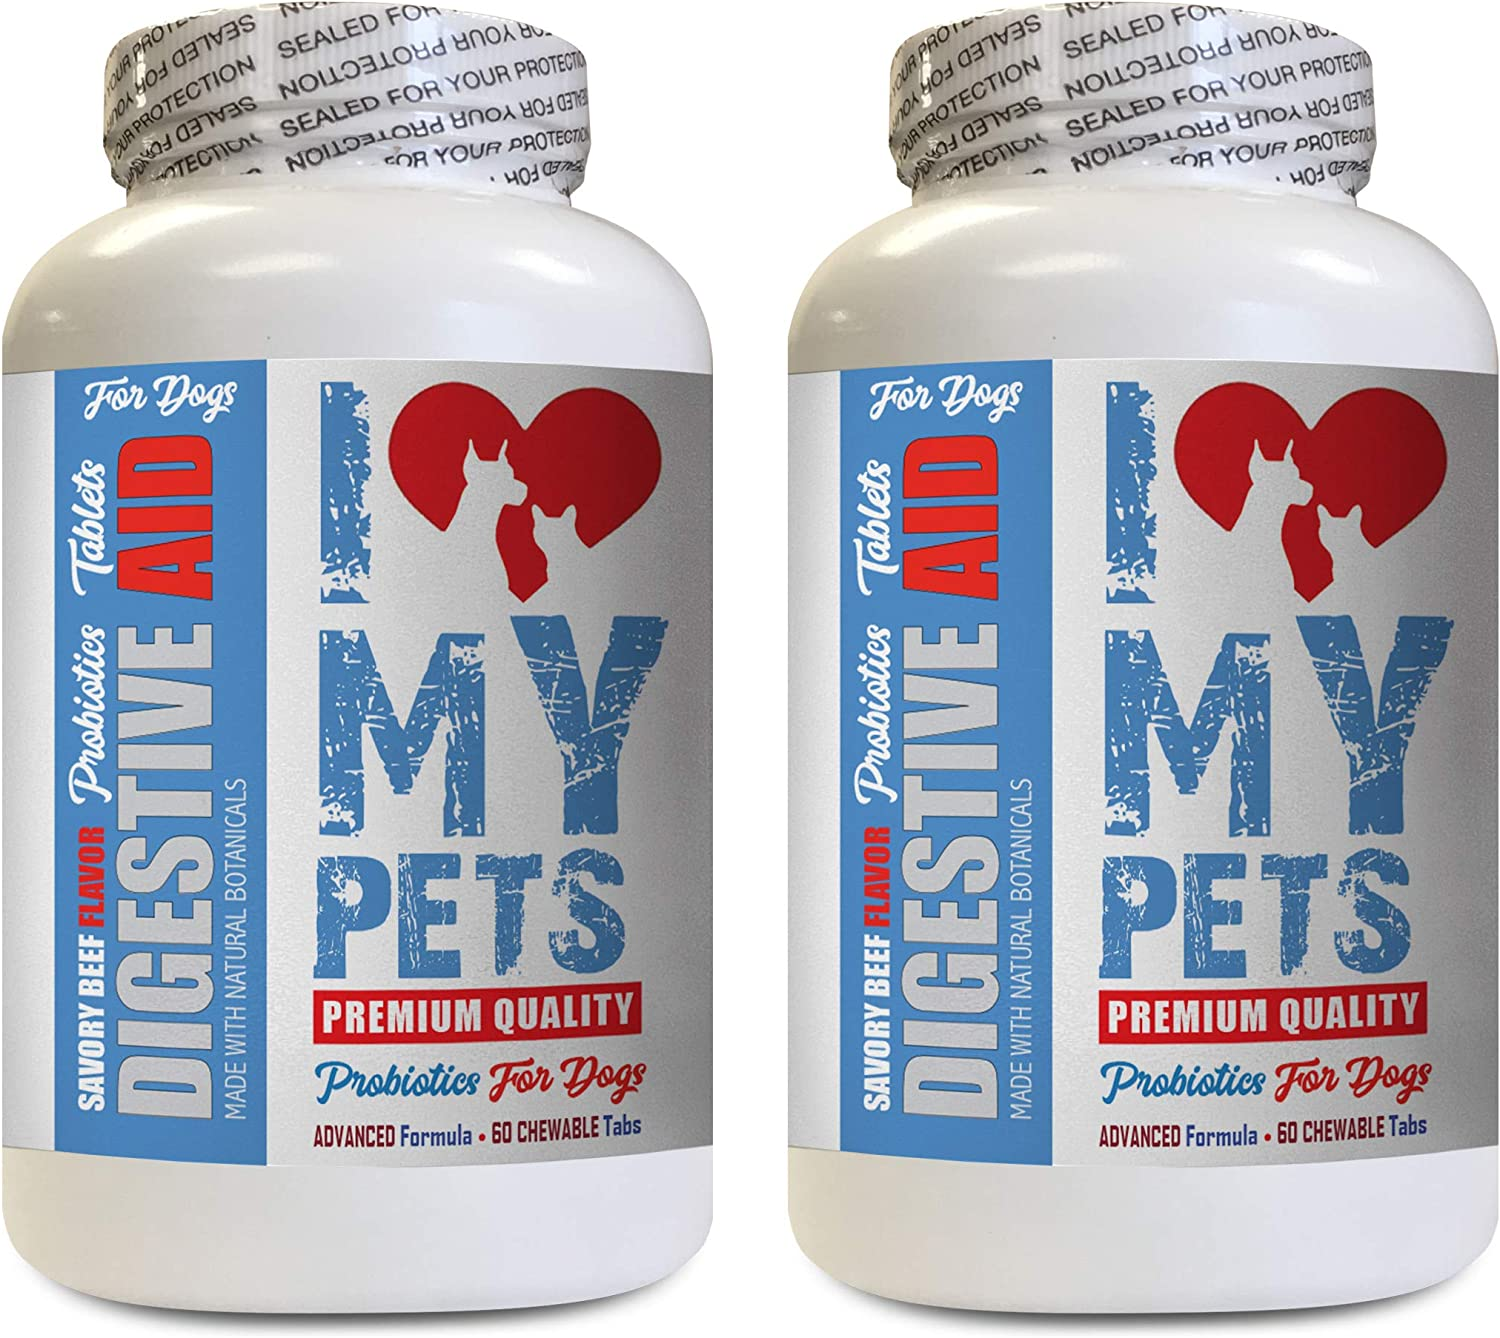 I LOVE Don't miss the campaign MY PETS LLC Digestive Supplement Max 63% OFF for Dog AID -